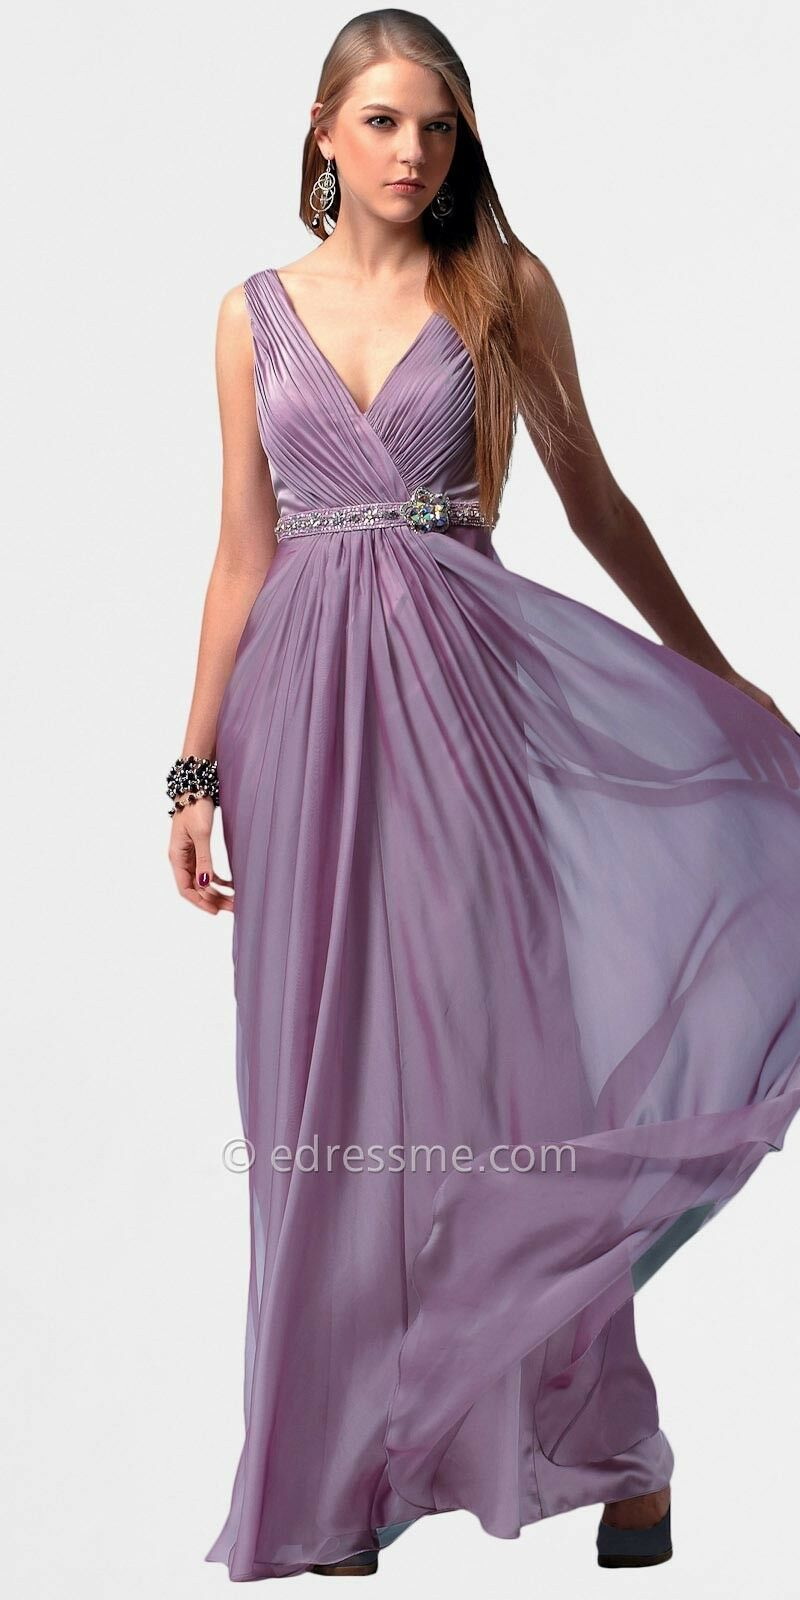 Deep-V Prom Dresses with Embellished Belt from from from LM Collection 6e7b95